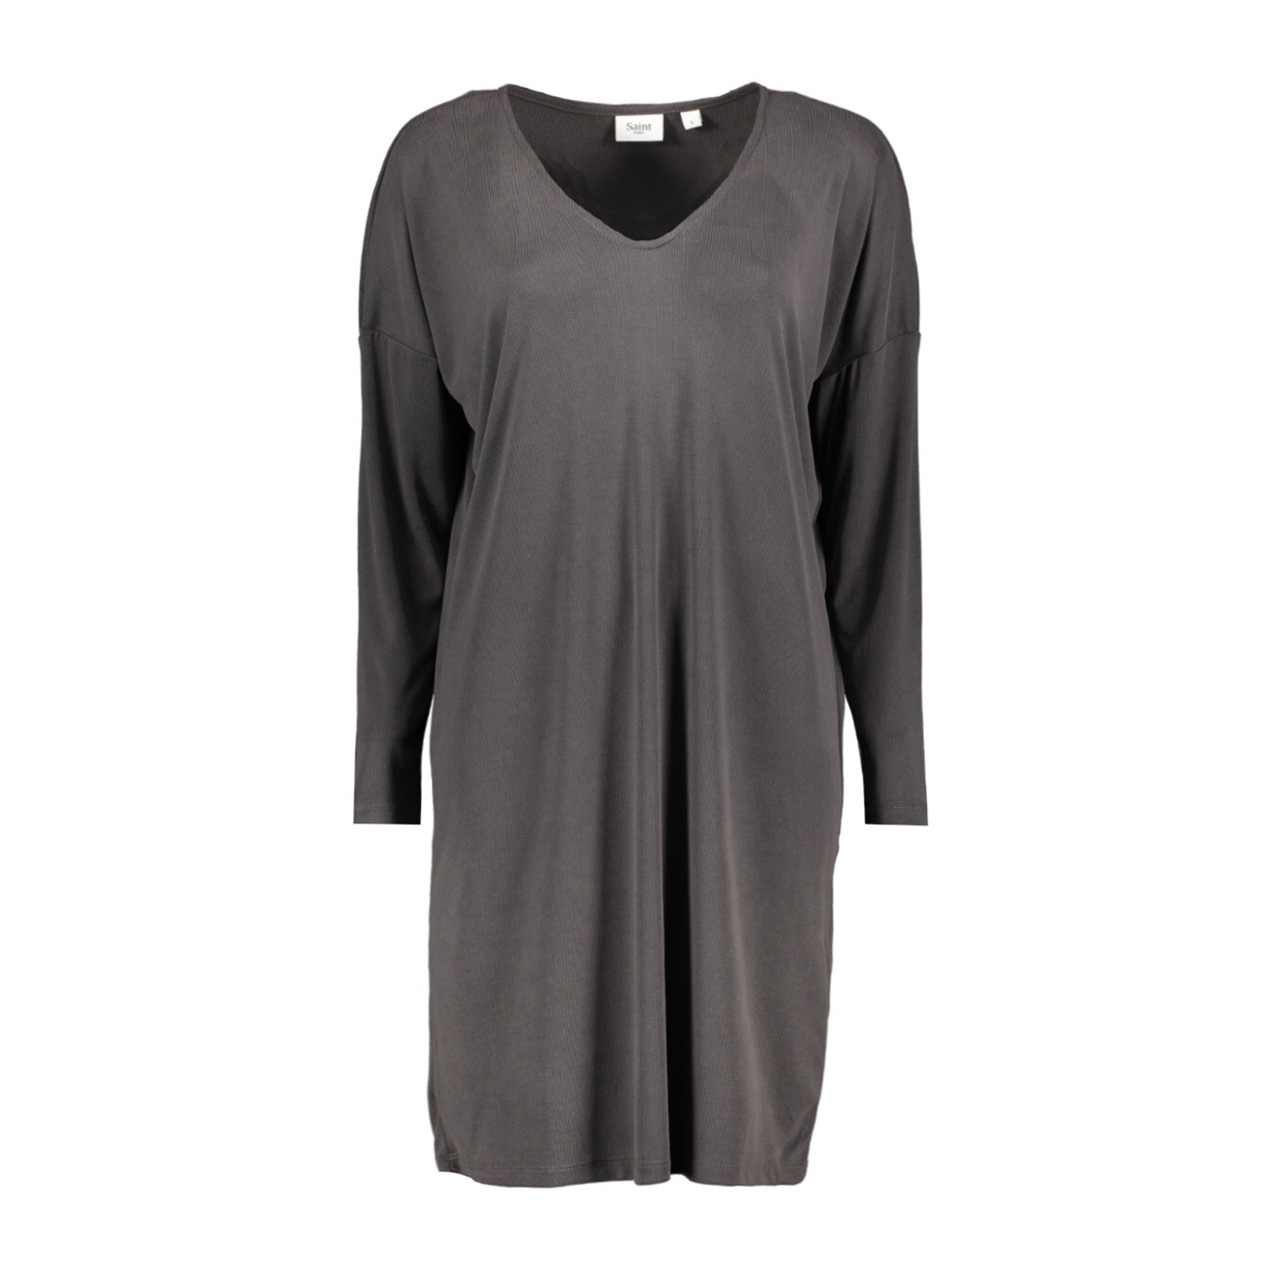 Giana Charcoal Jersey Dress by Saint Tropez